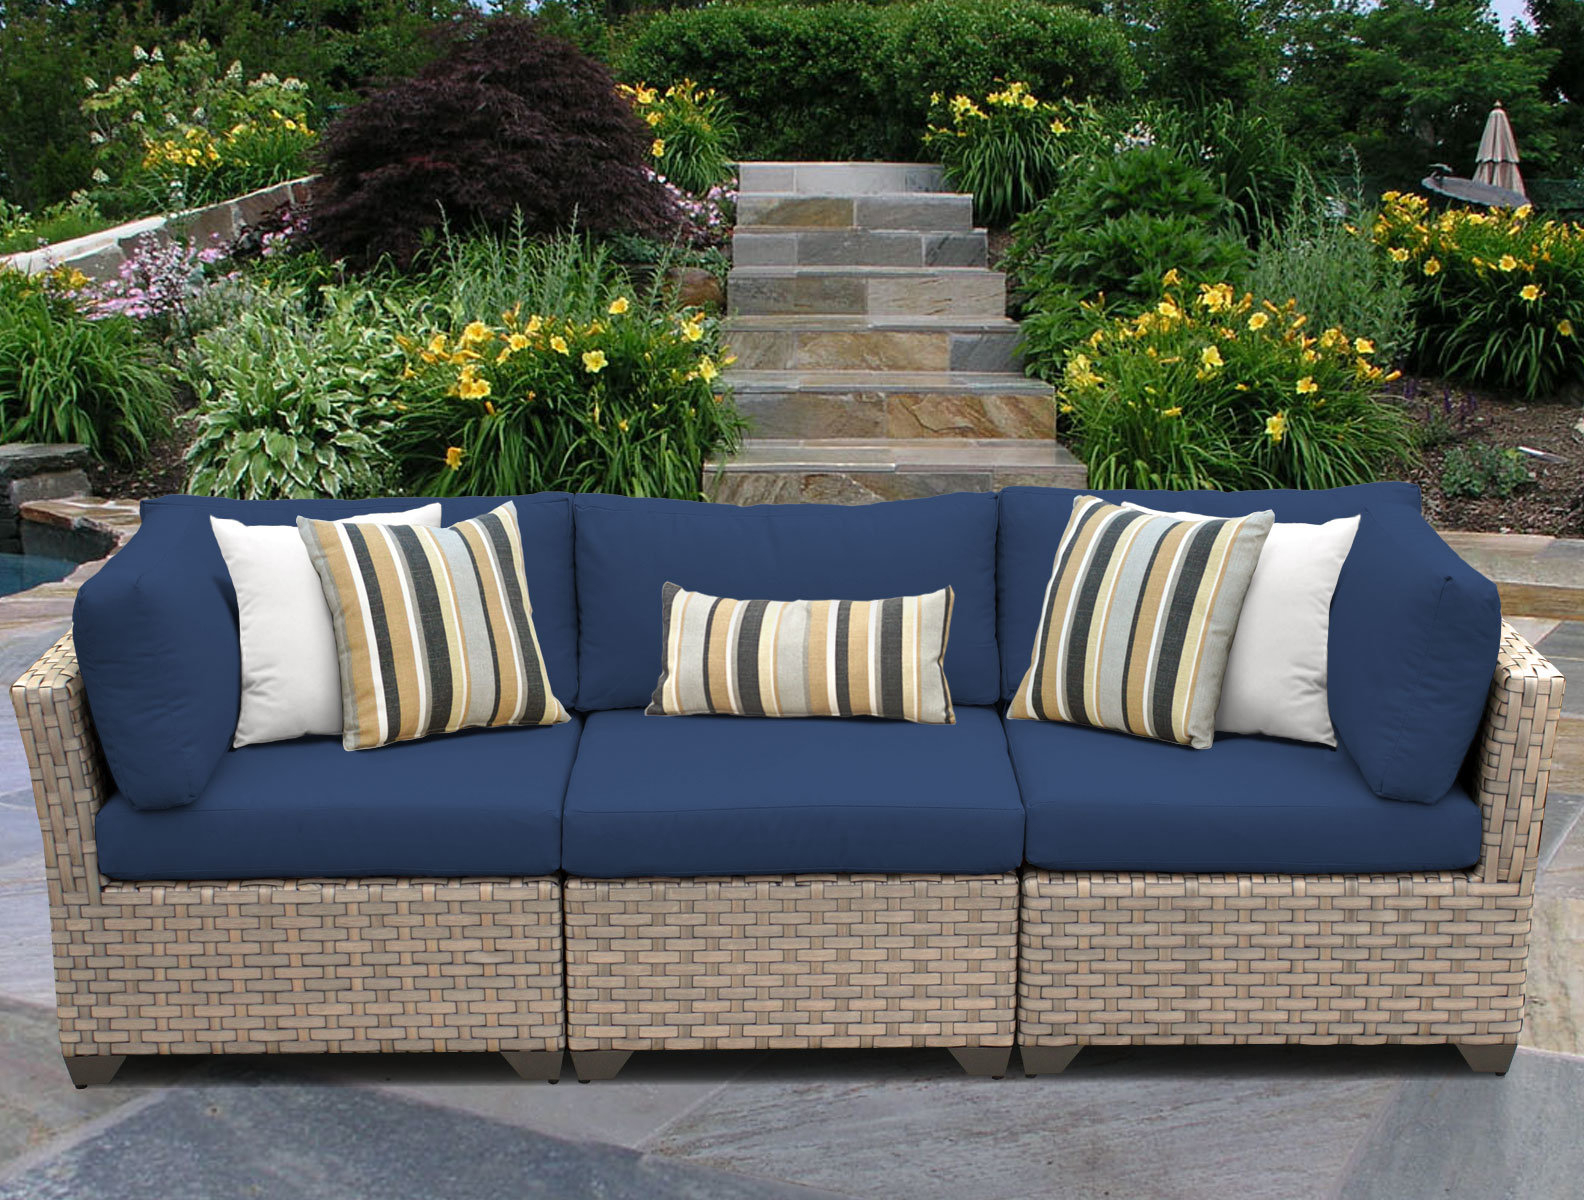 2019 Meeks Patio Sofas With Cushions Within Rochford Patio Sofa With Cushions (View 3 of 20)